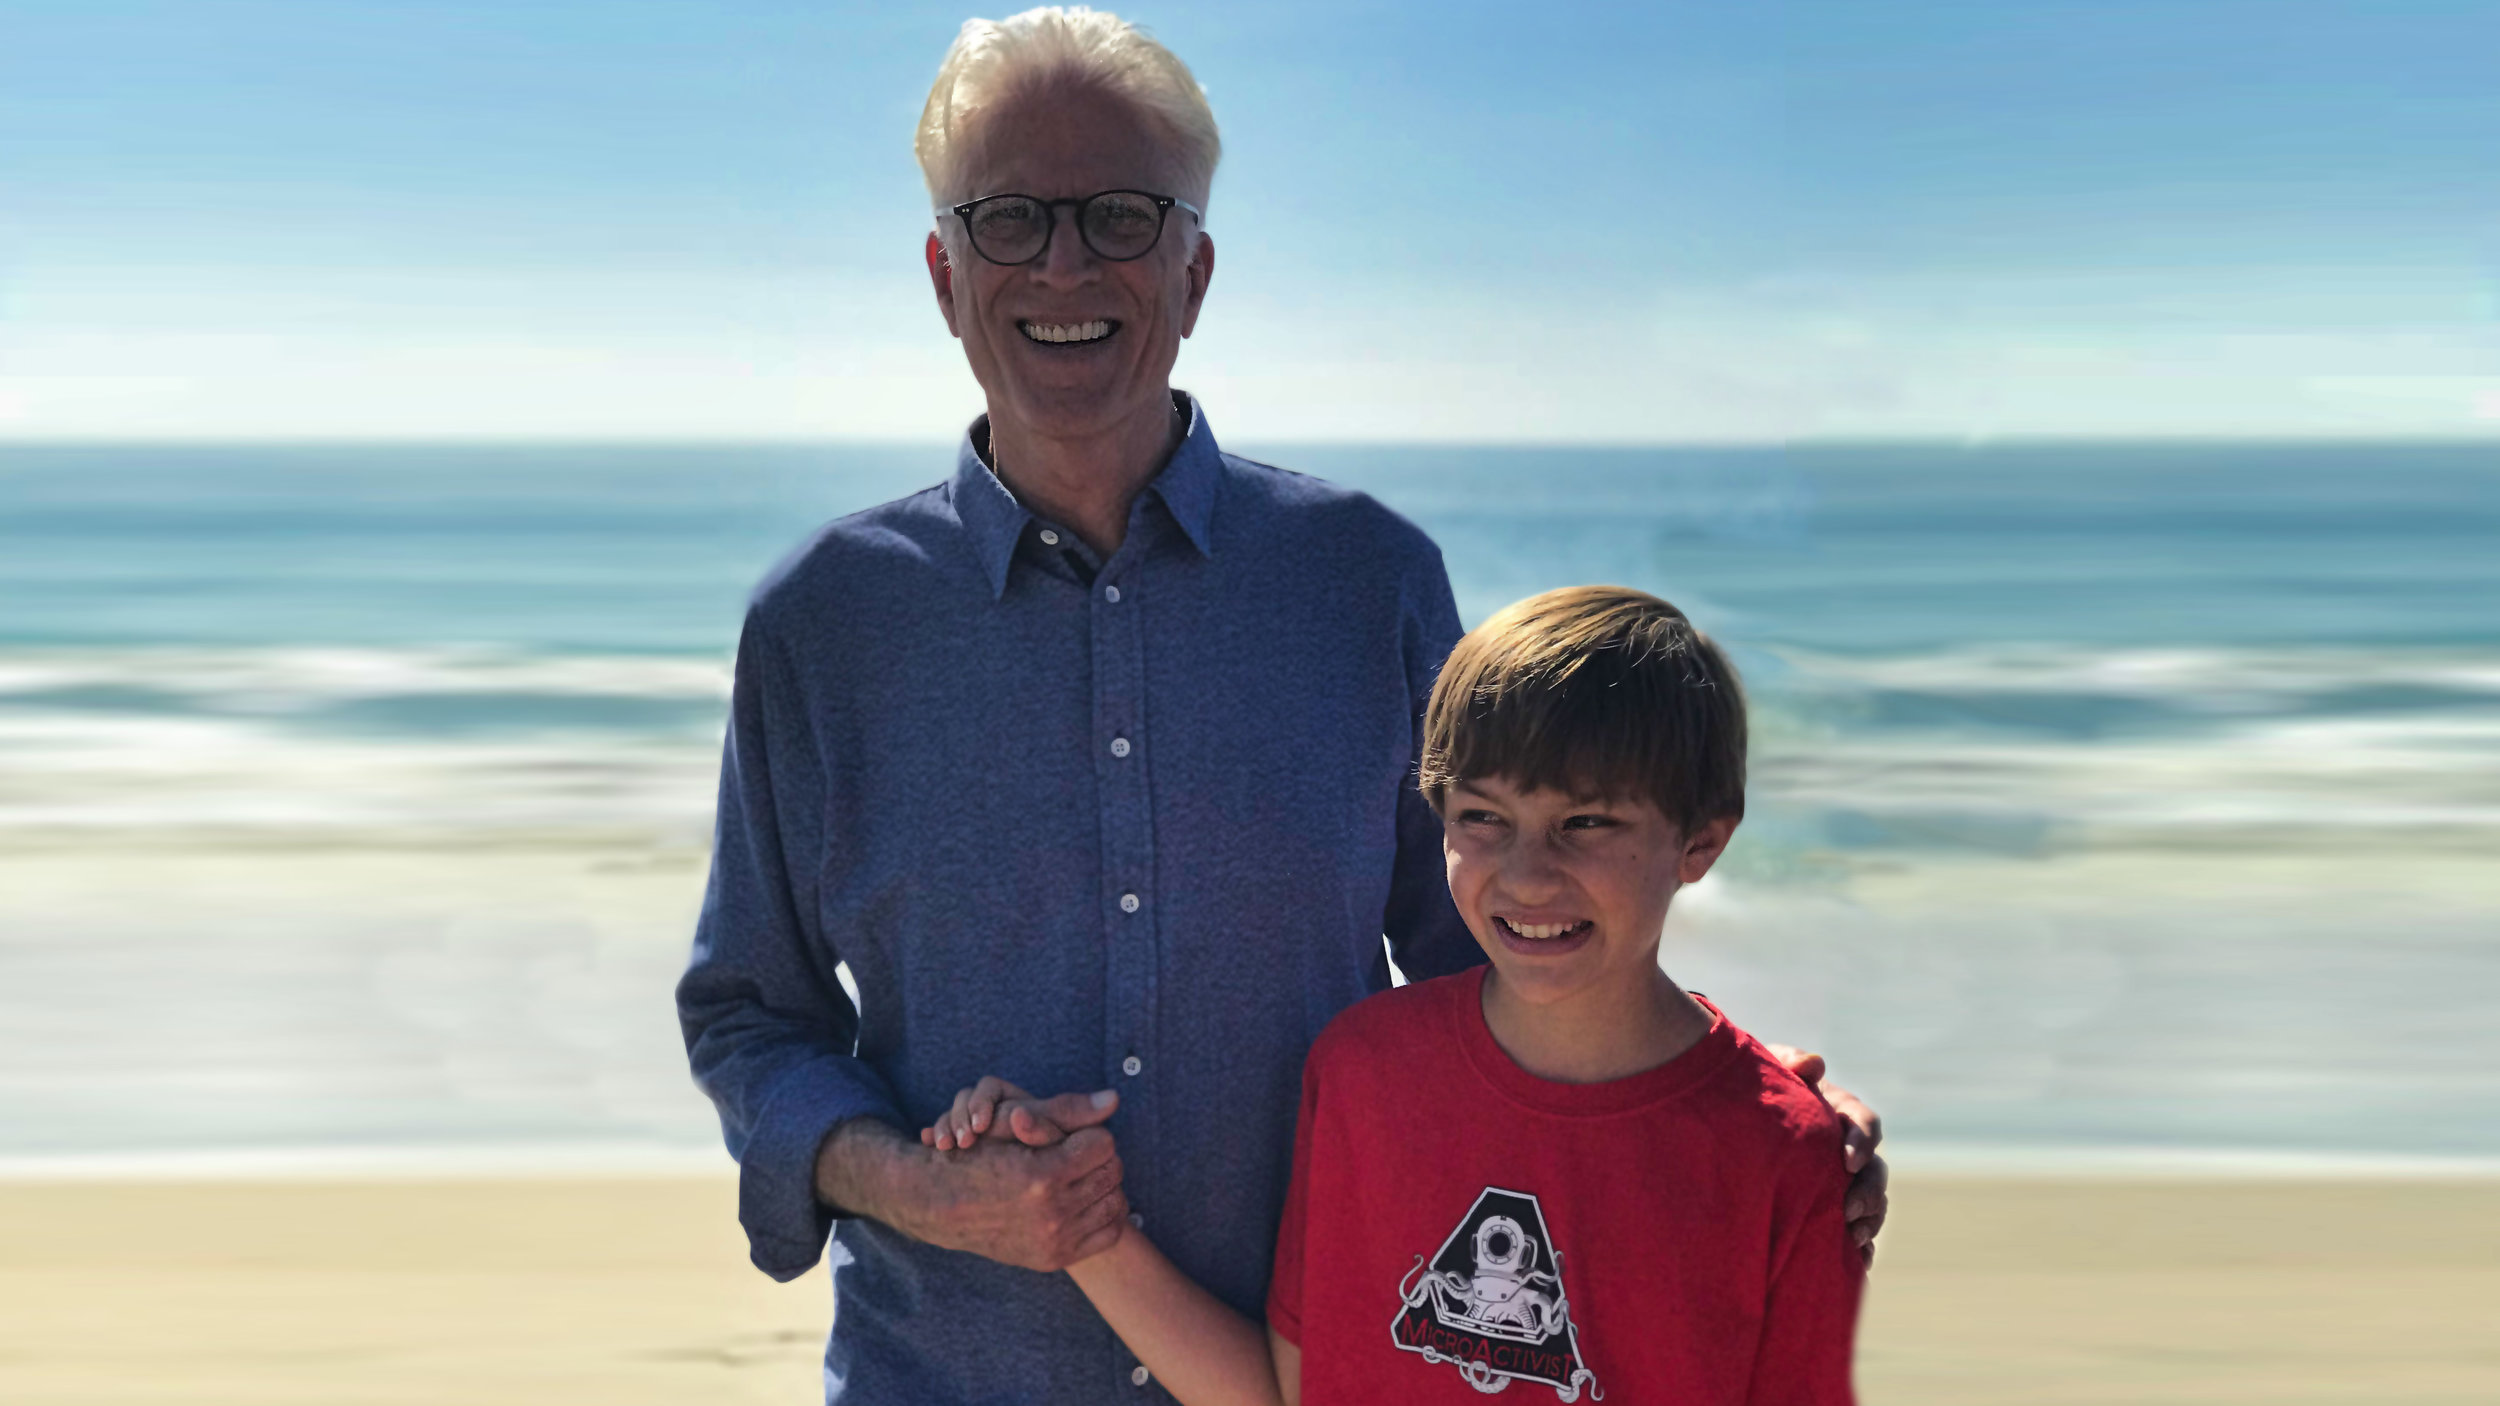 OFFSHORE DRILLING PROTEST WITH LONG TIME OCEAN ADVOCATE TED DANSON